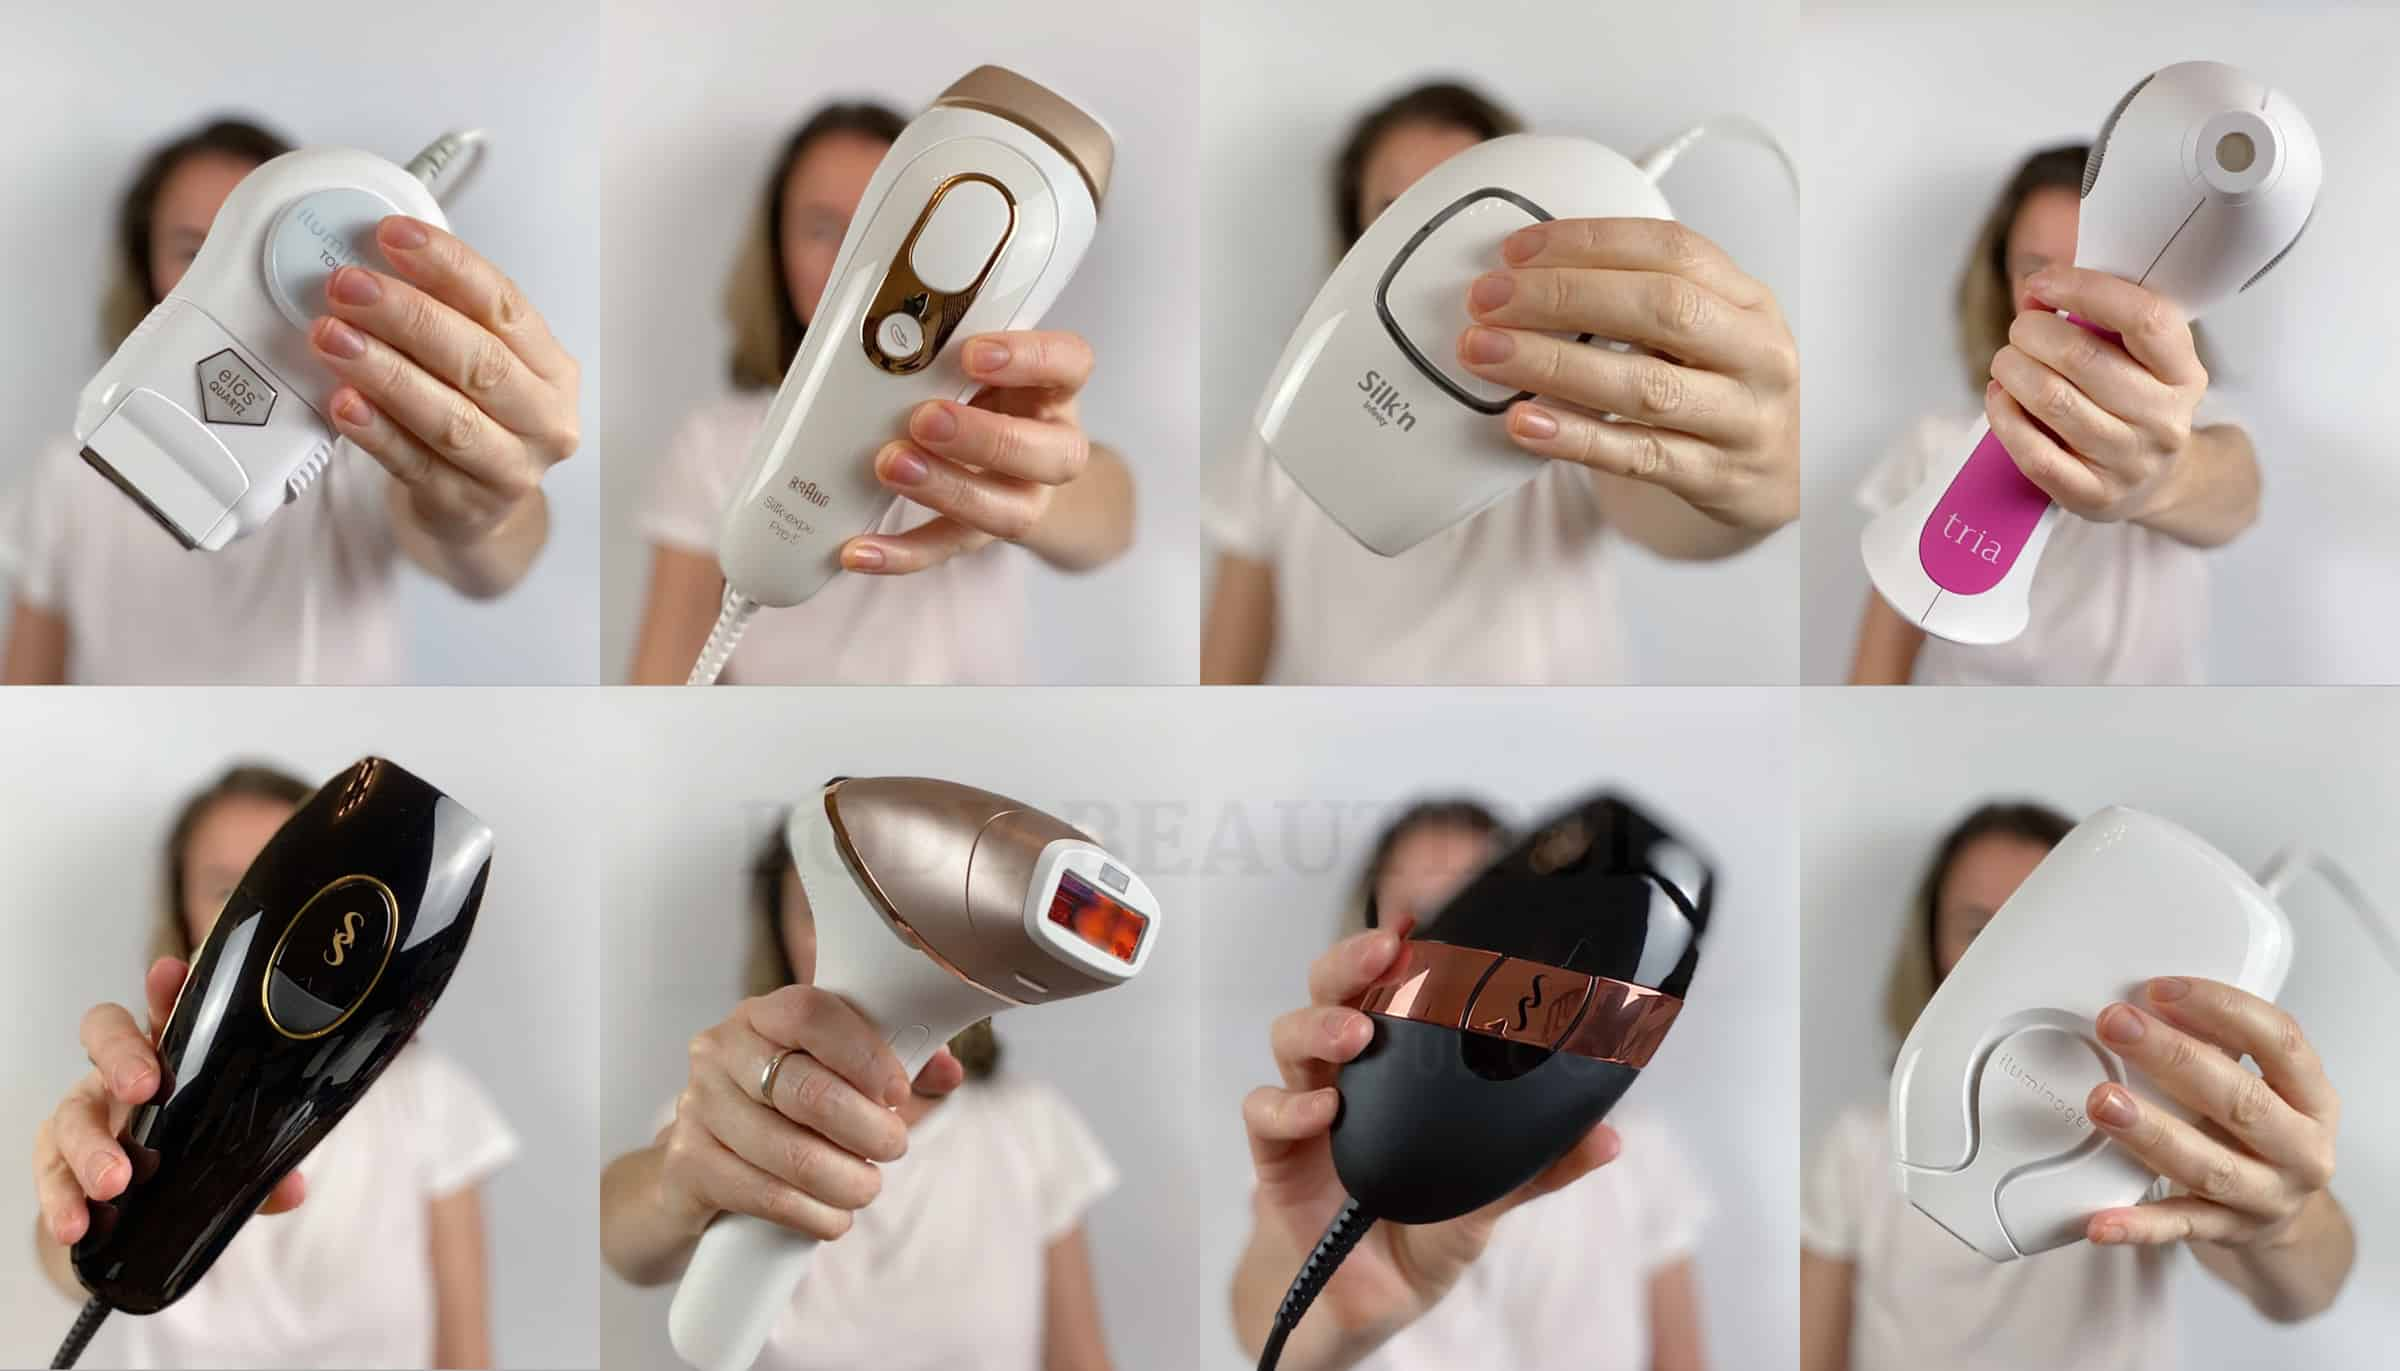 Best Home Laser Ipl Hair Removal Tested Compared